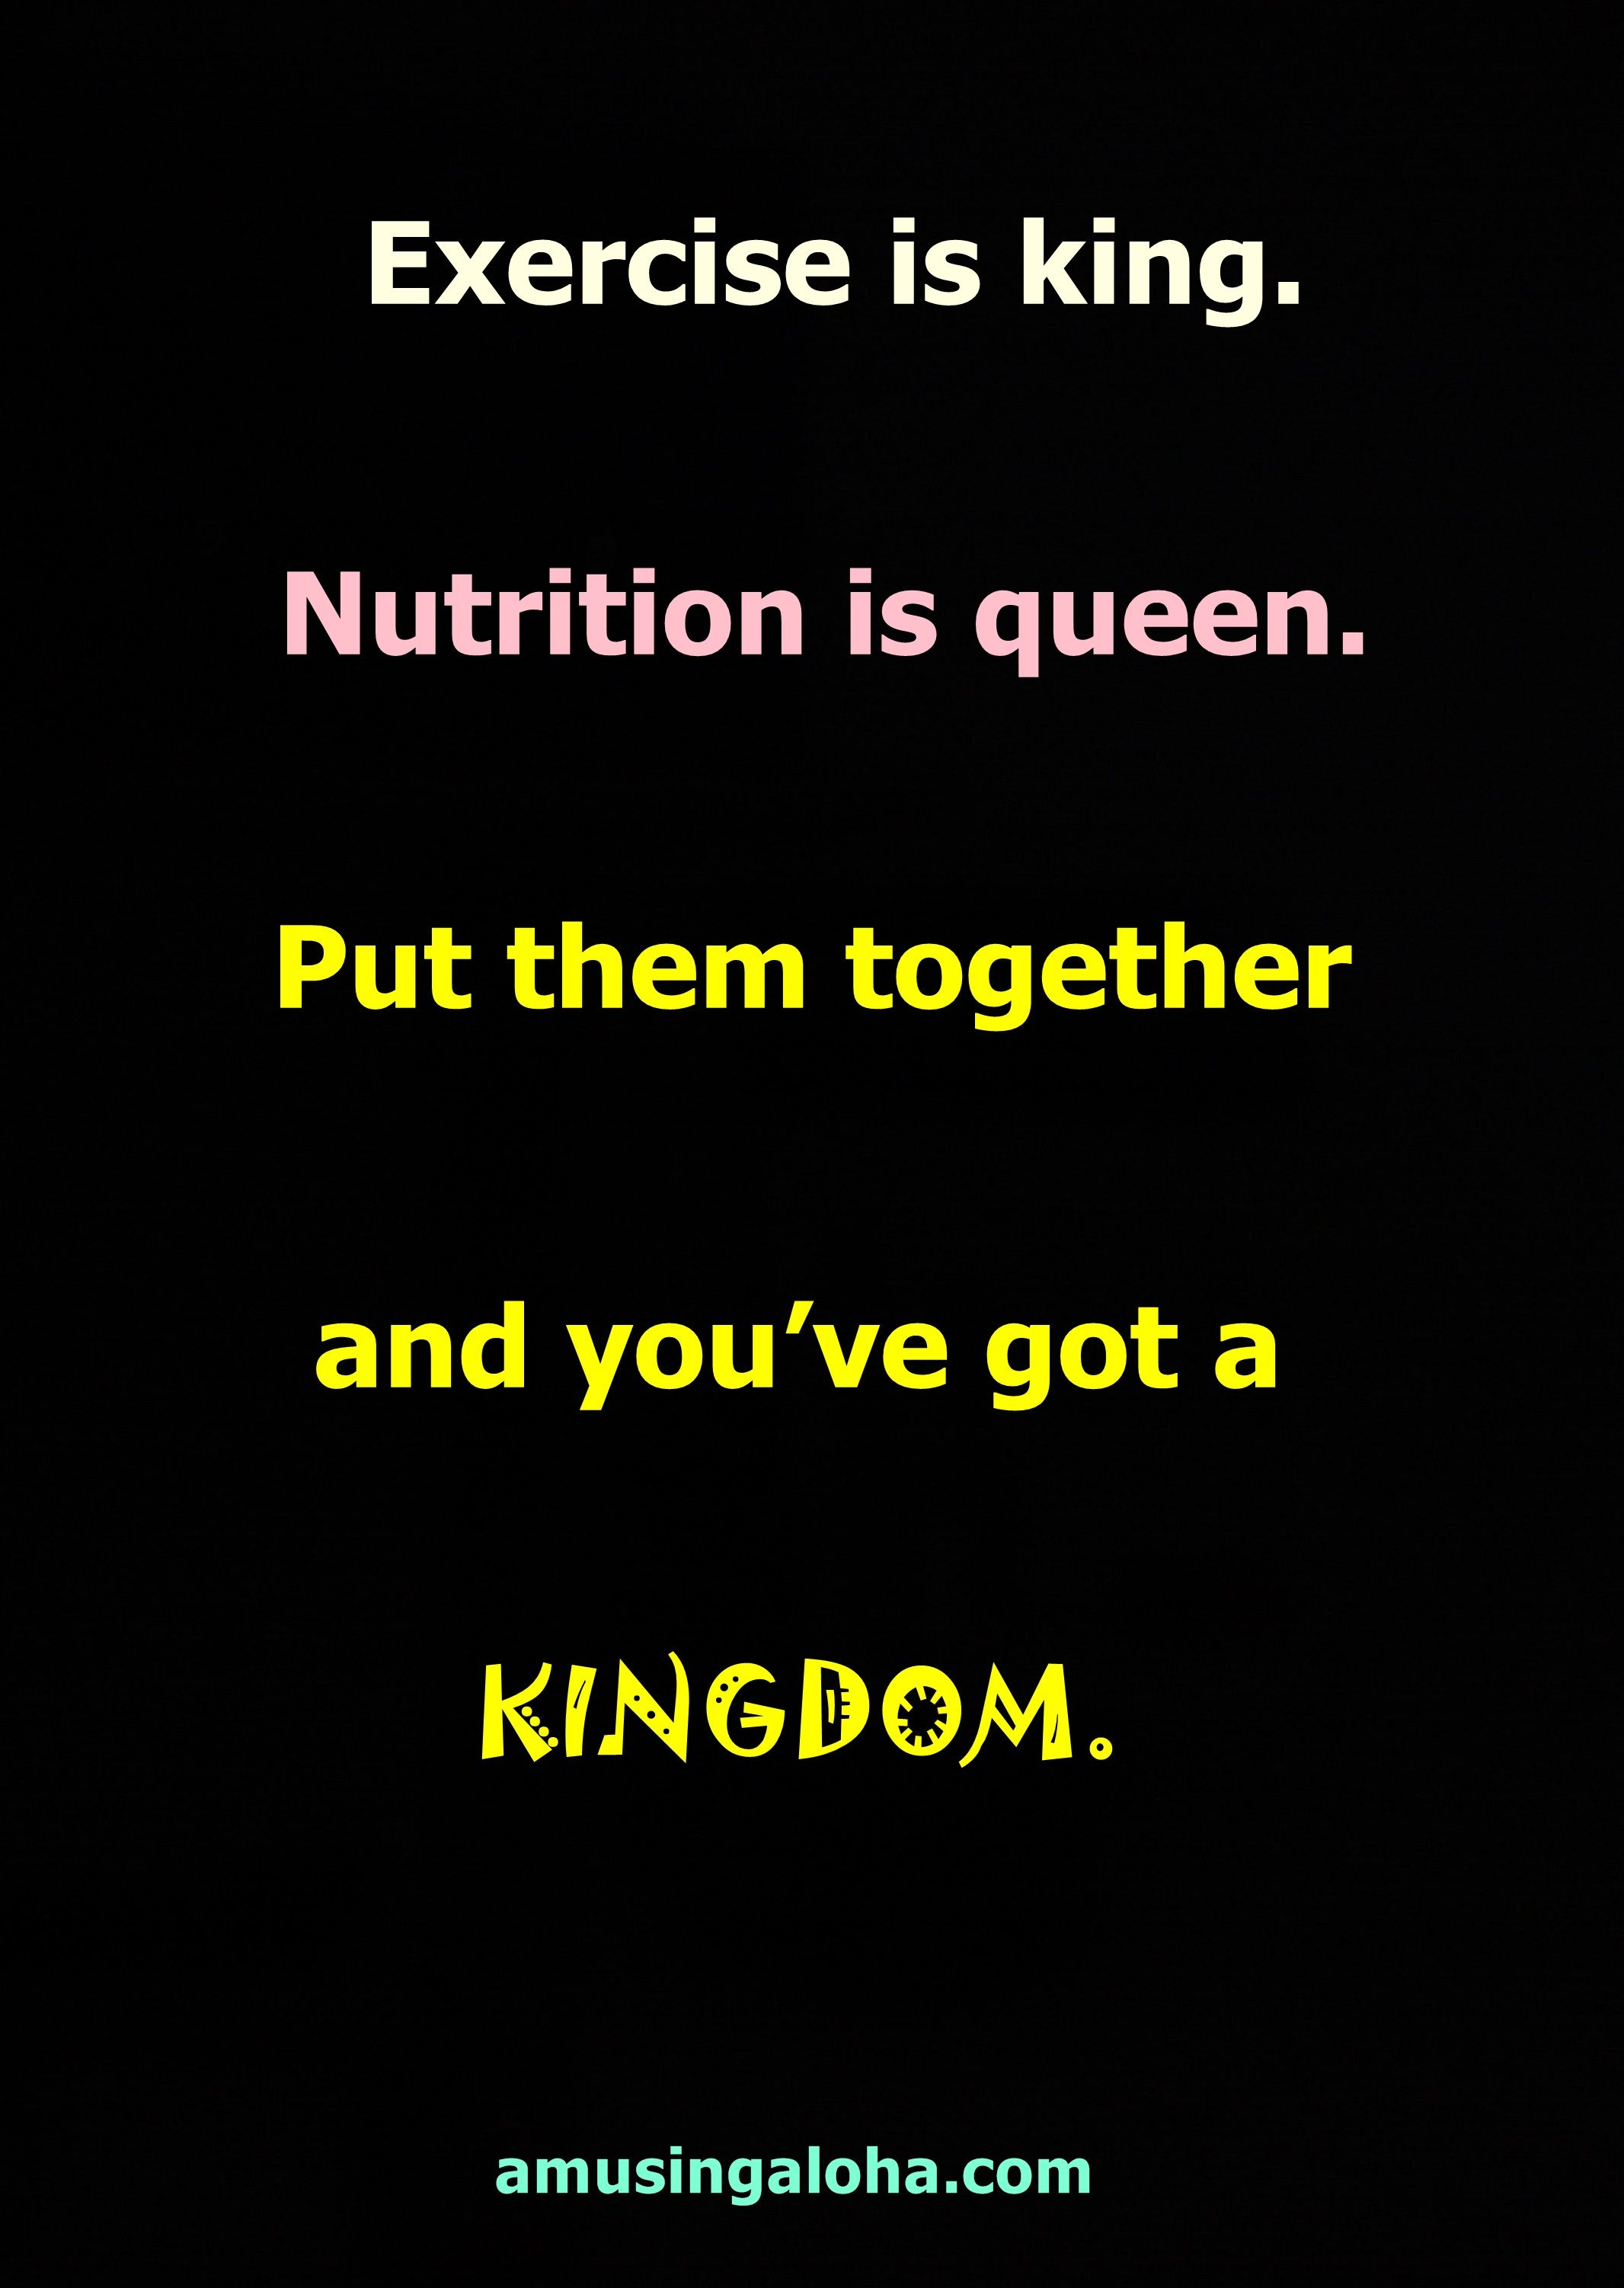 Kingdom Fitness Quotes Motivation Amusing